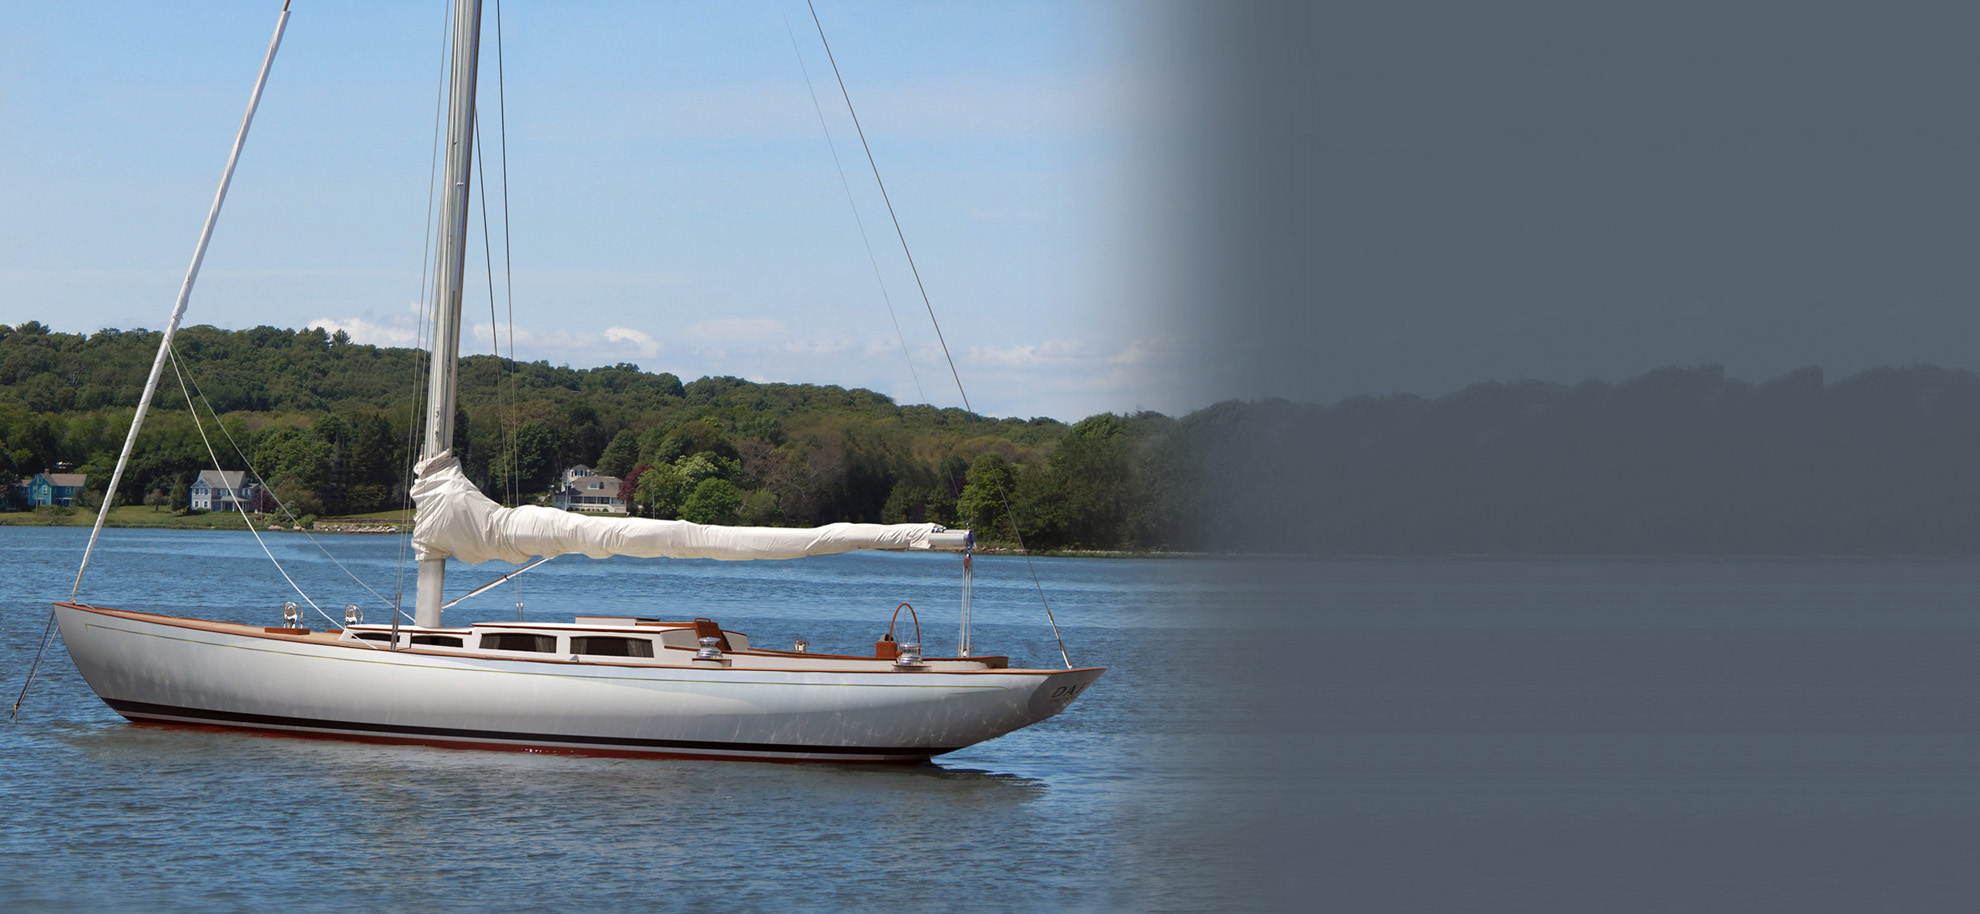 DAF-Renderings-47ft-Sailboat-mystic-Ct-ong1